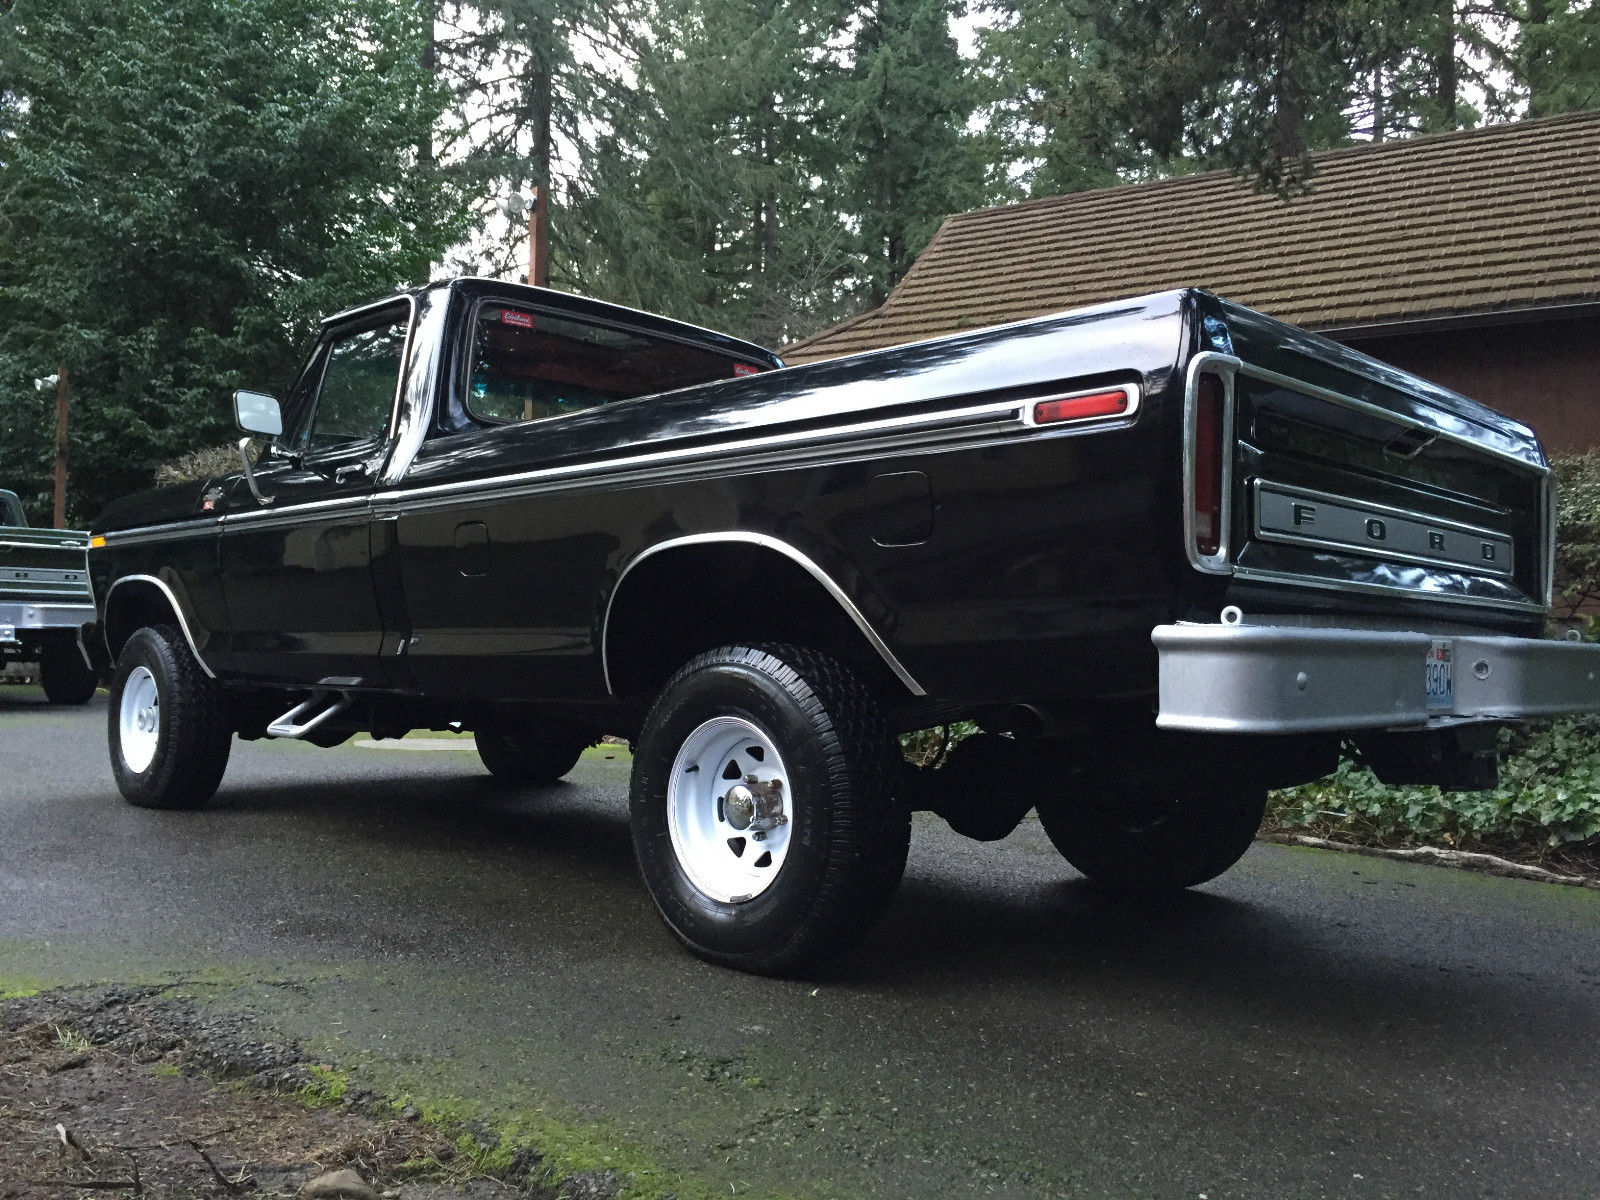 1978 ford f150 ranger xlt 4x4 short bed amazing condition 100 rust free for sale in clackamas. Black Bedroom Furniture Sets. Home Design Ideas